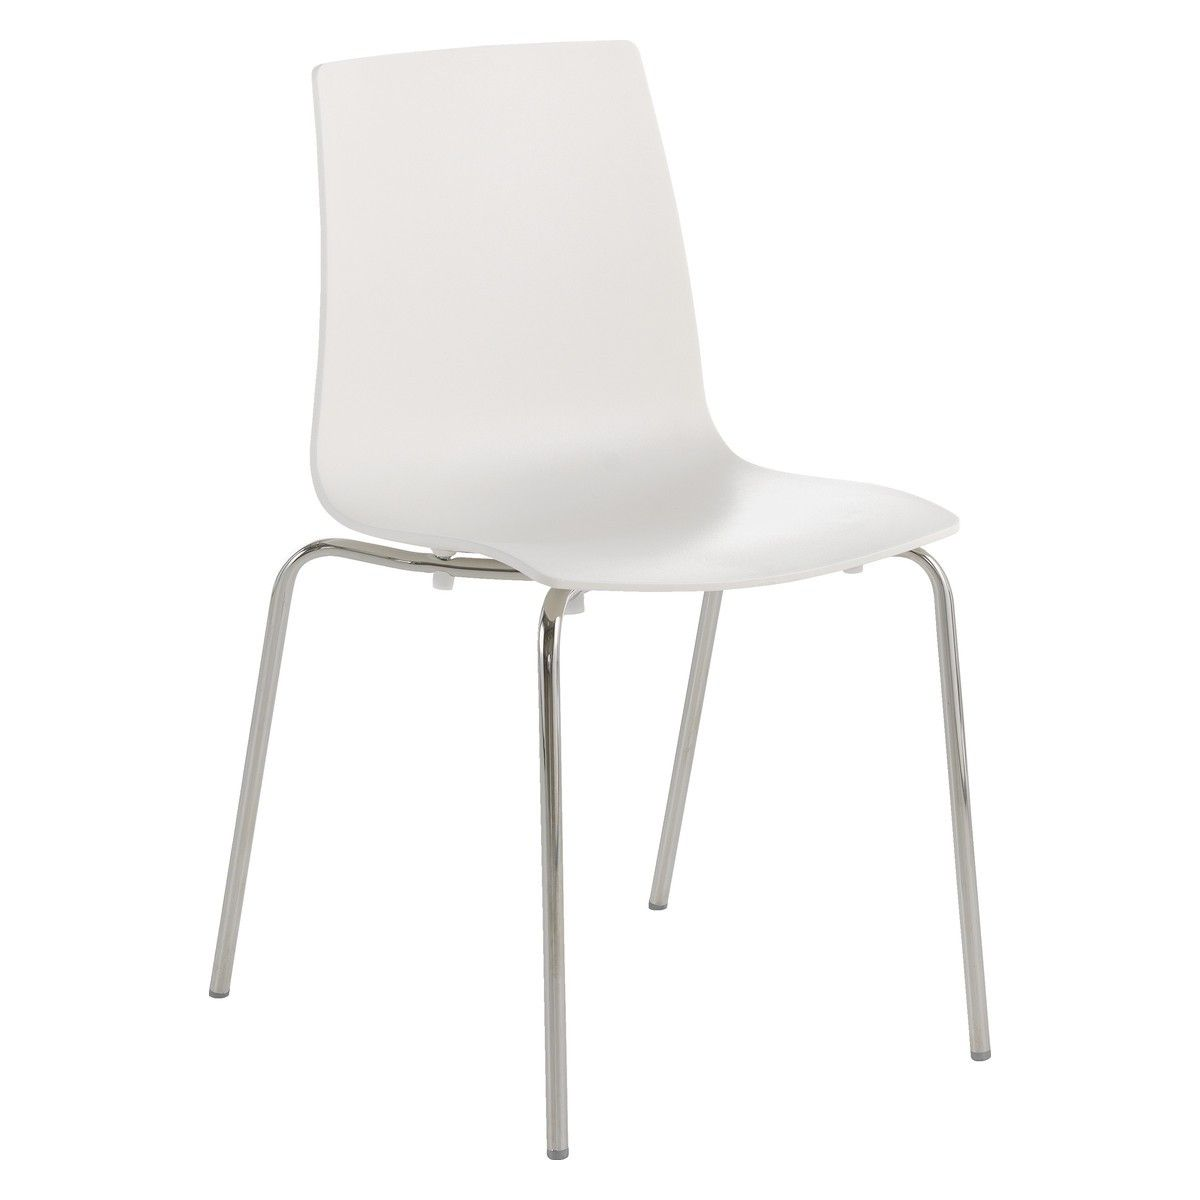 new product 25c0d 2de11 BENJI White stackable dining chair | Buy now at Habitat UK ...